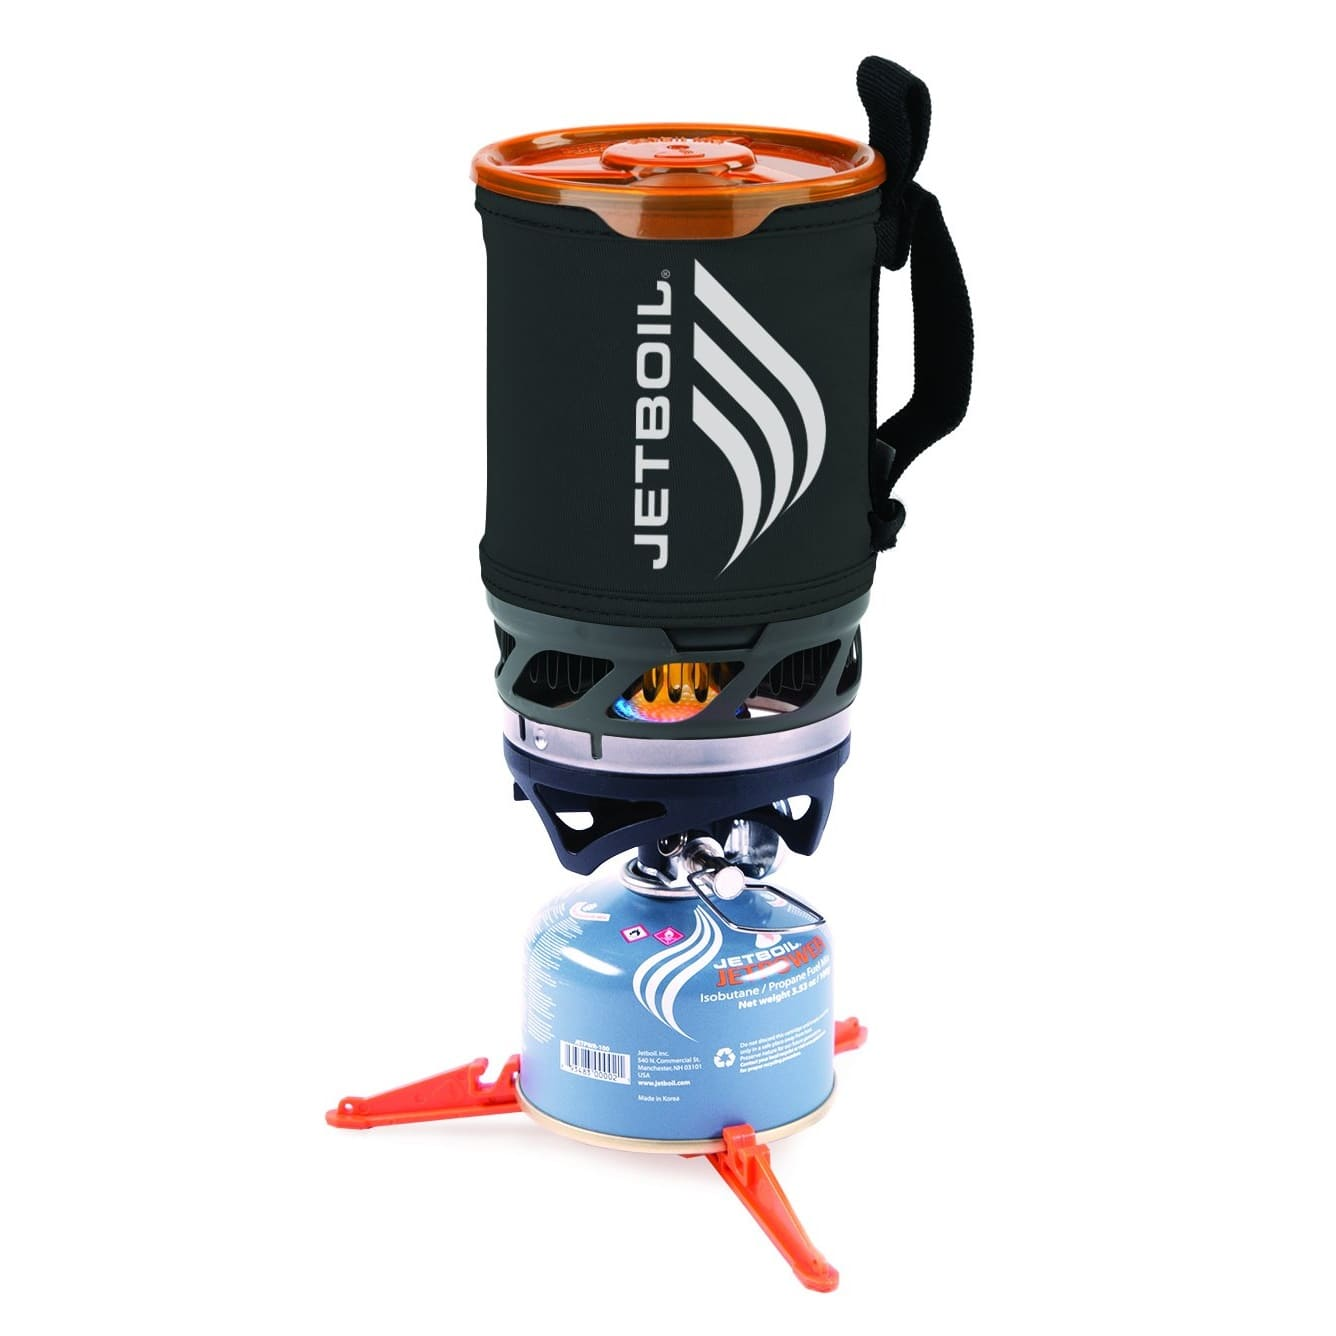 MicroMo Cooking System, Jetboil